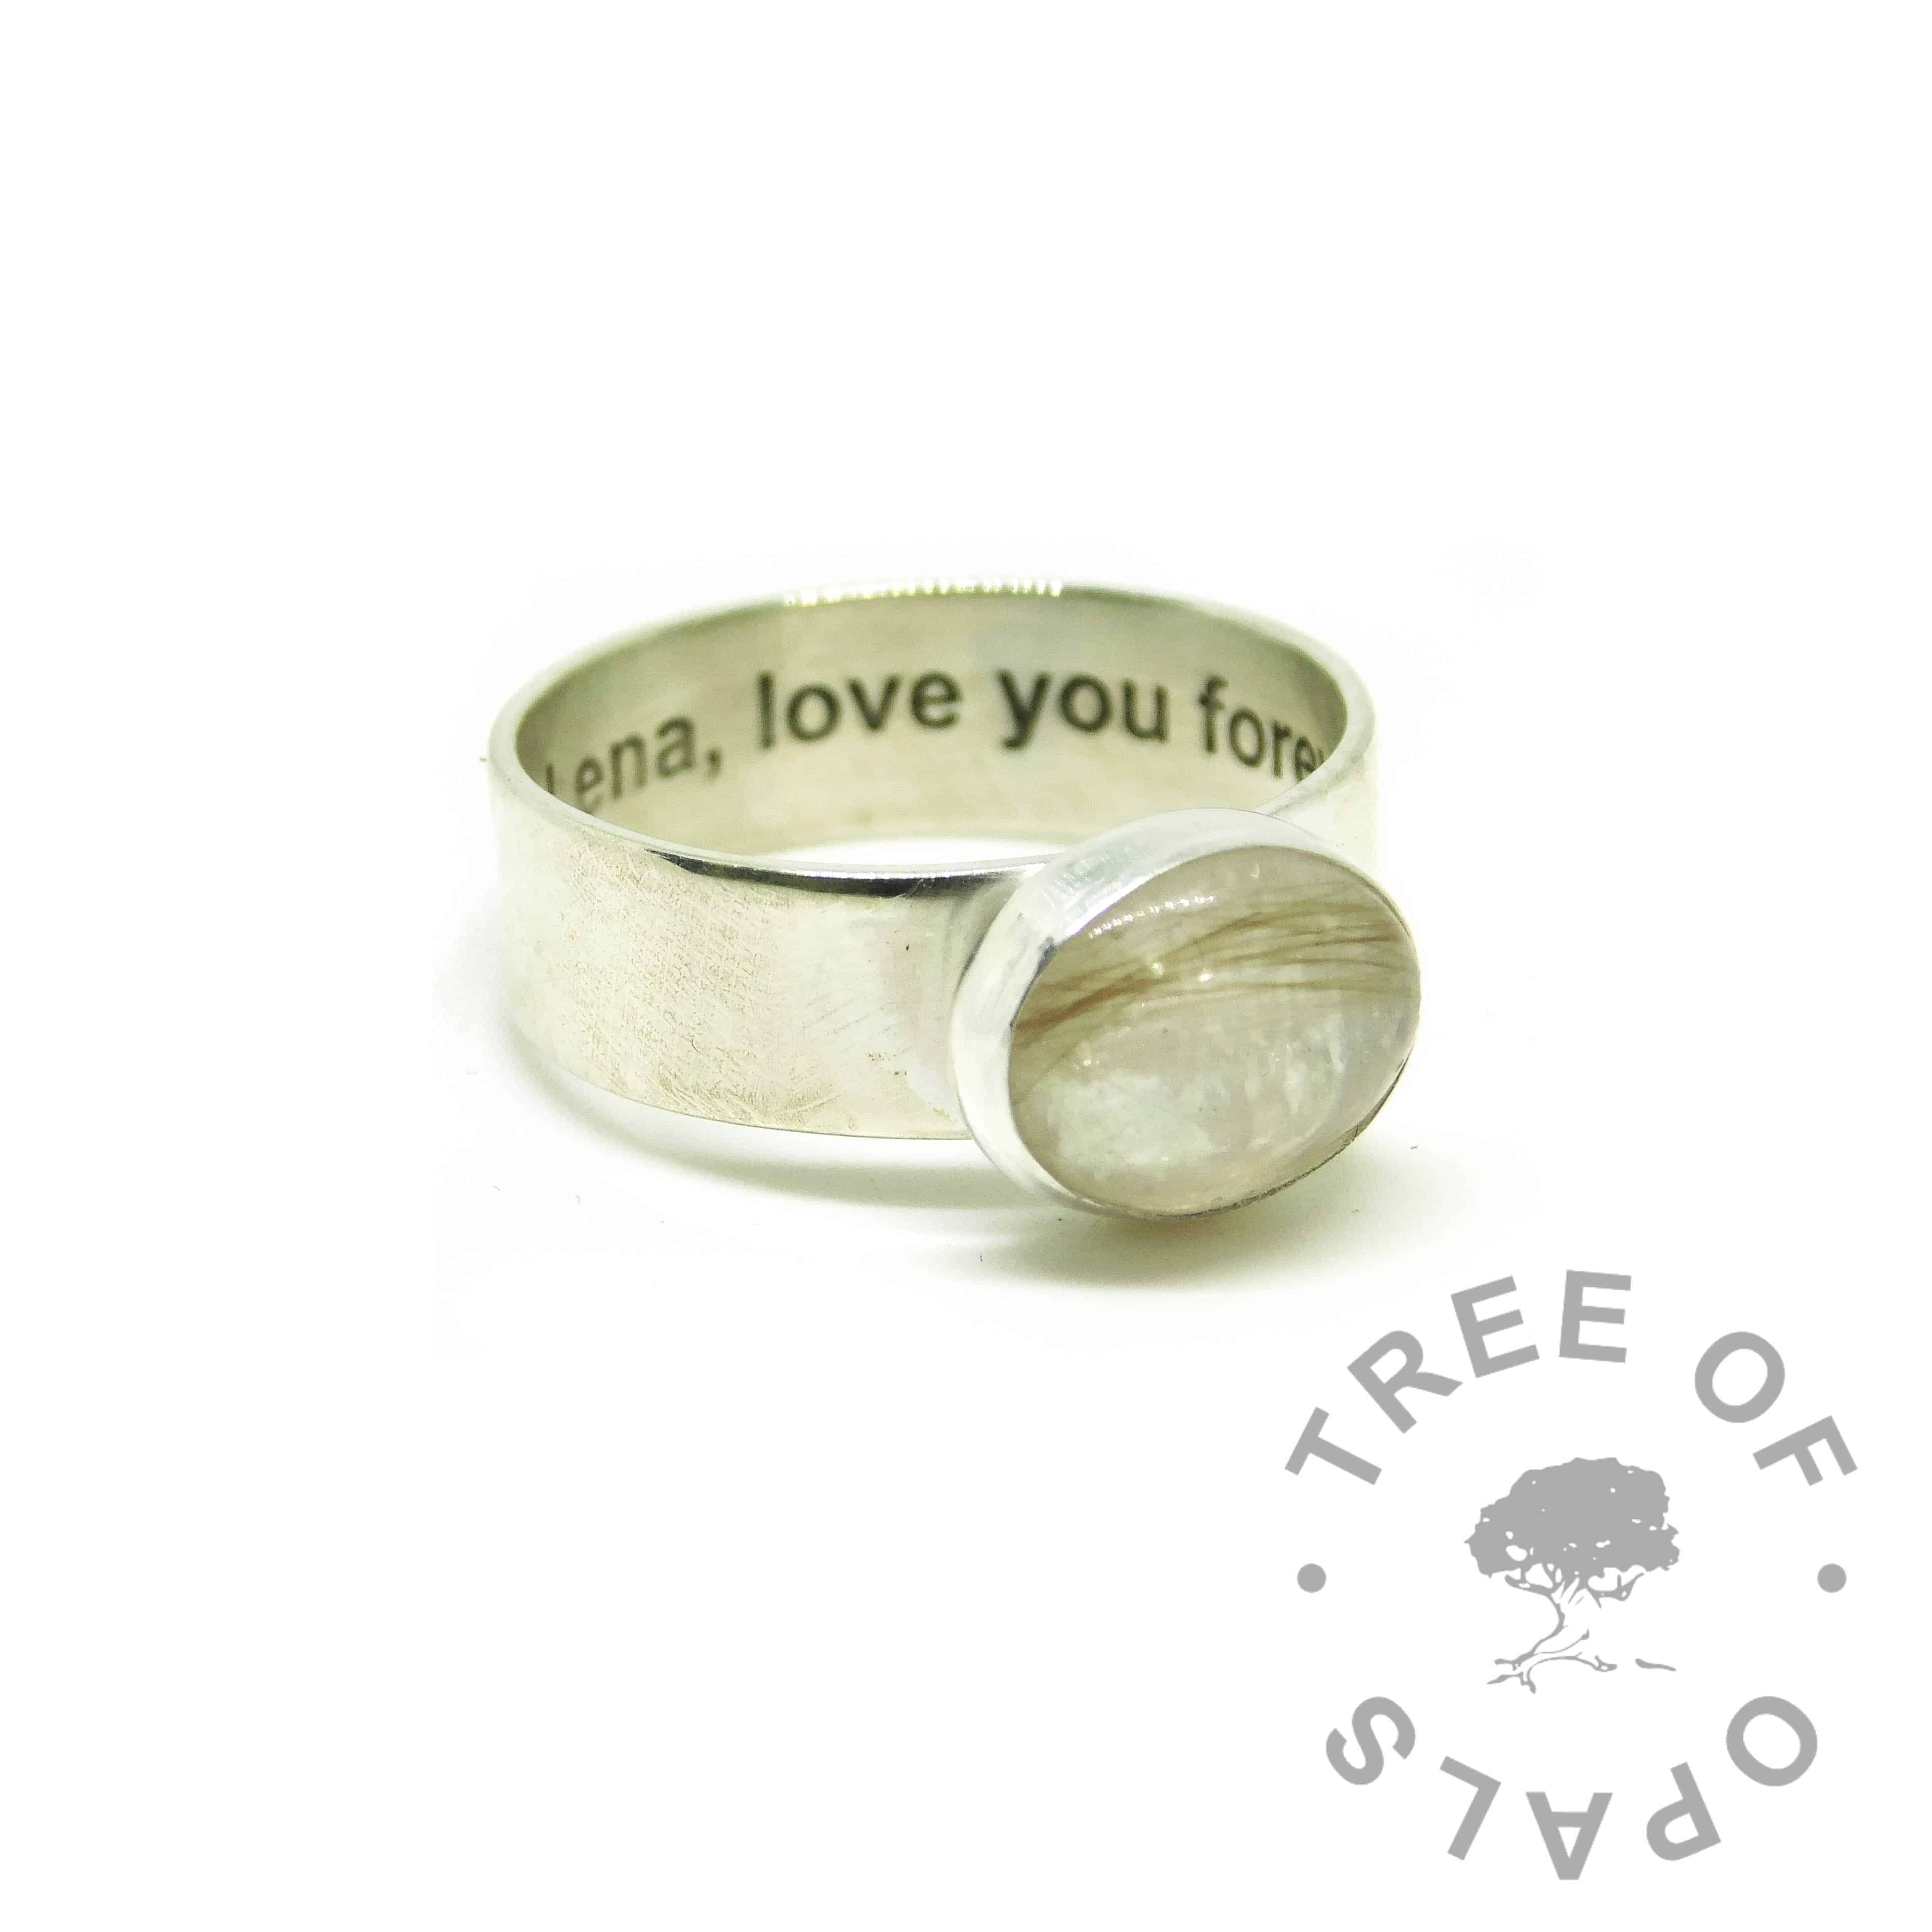 white hair ring, lock of hair ring on 6mm shiny band with Arial font engraving on the inside. Unicorn white resin sparkle mix. Love you forever